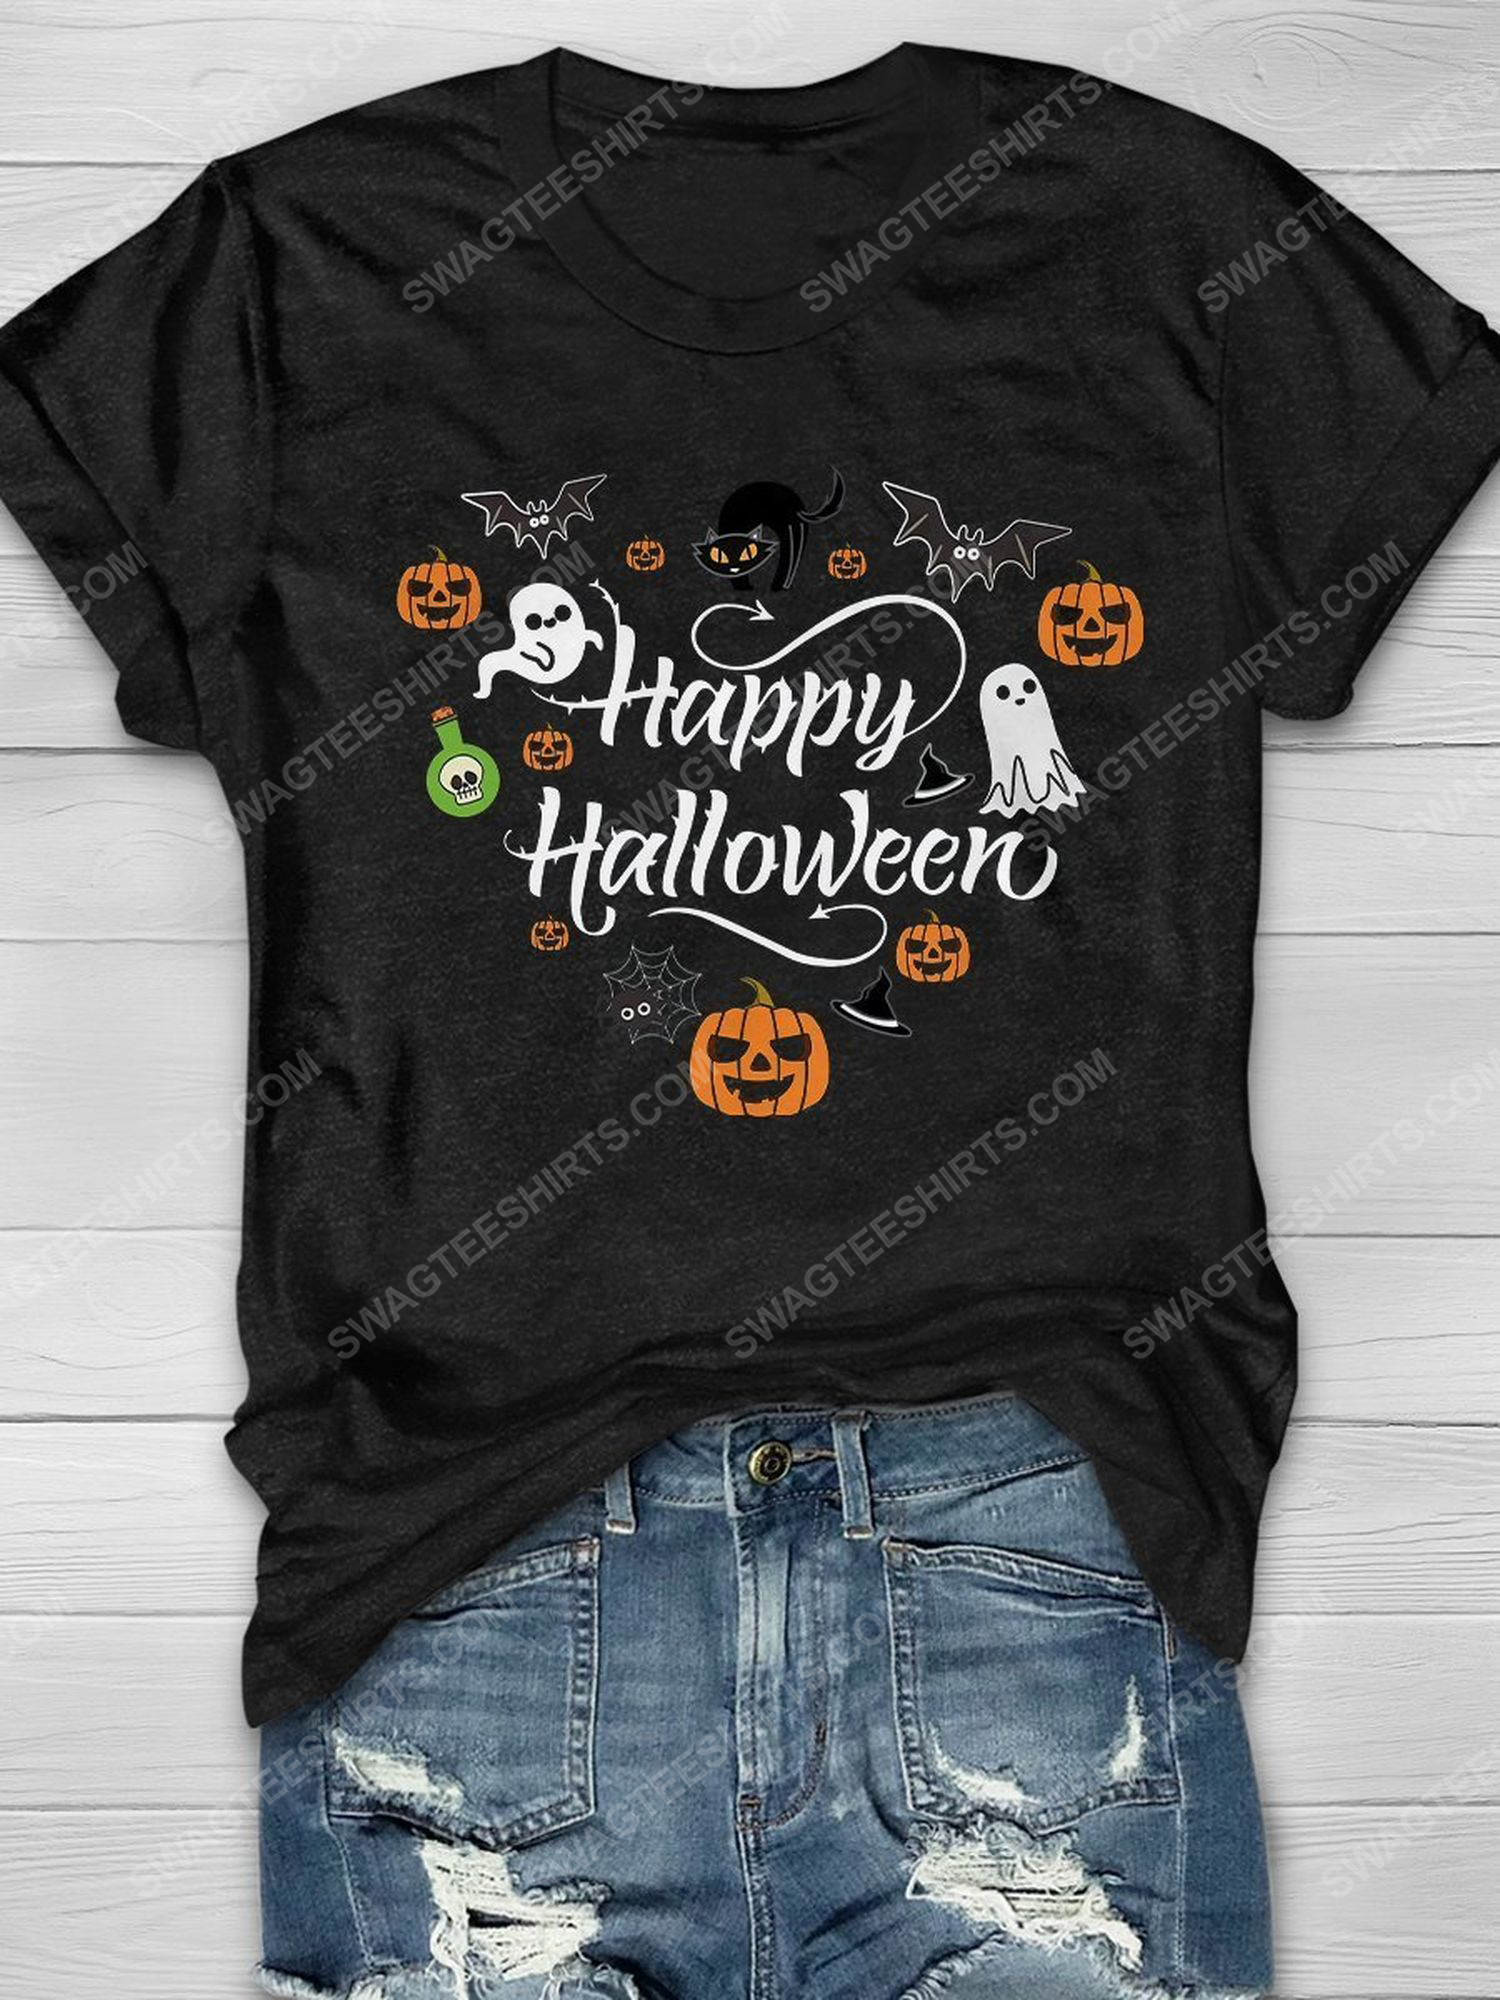 Happy halloween and little things doodle shirt